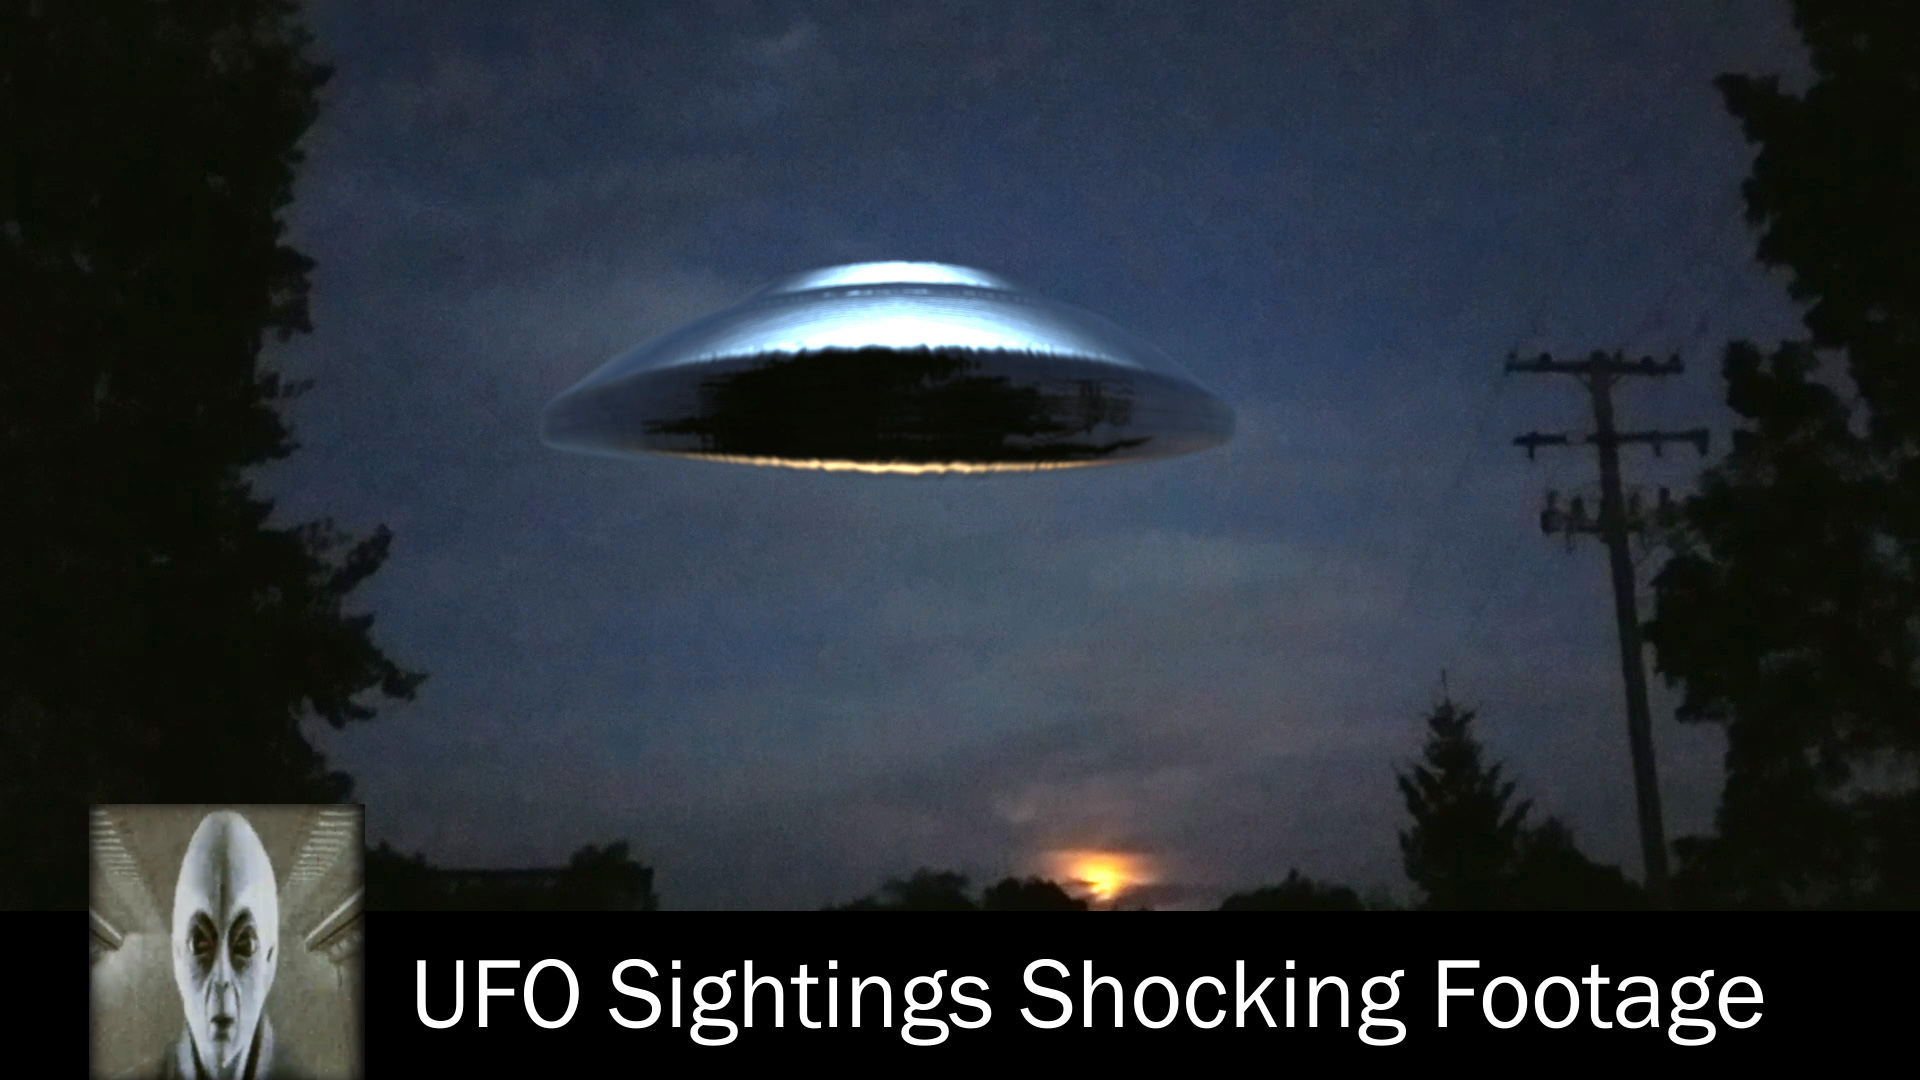 UFO Sightings Shocking Footage June 4th 2017 | iufosightings